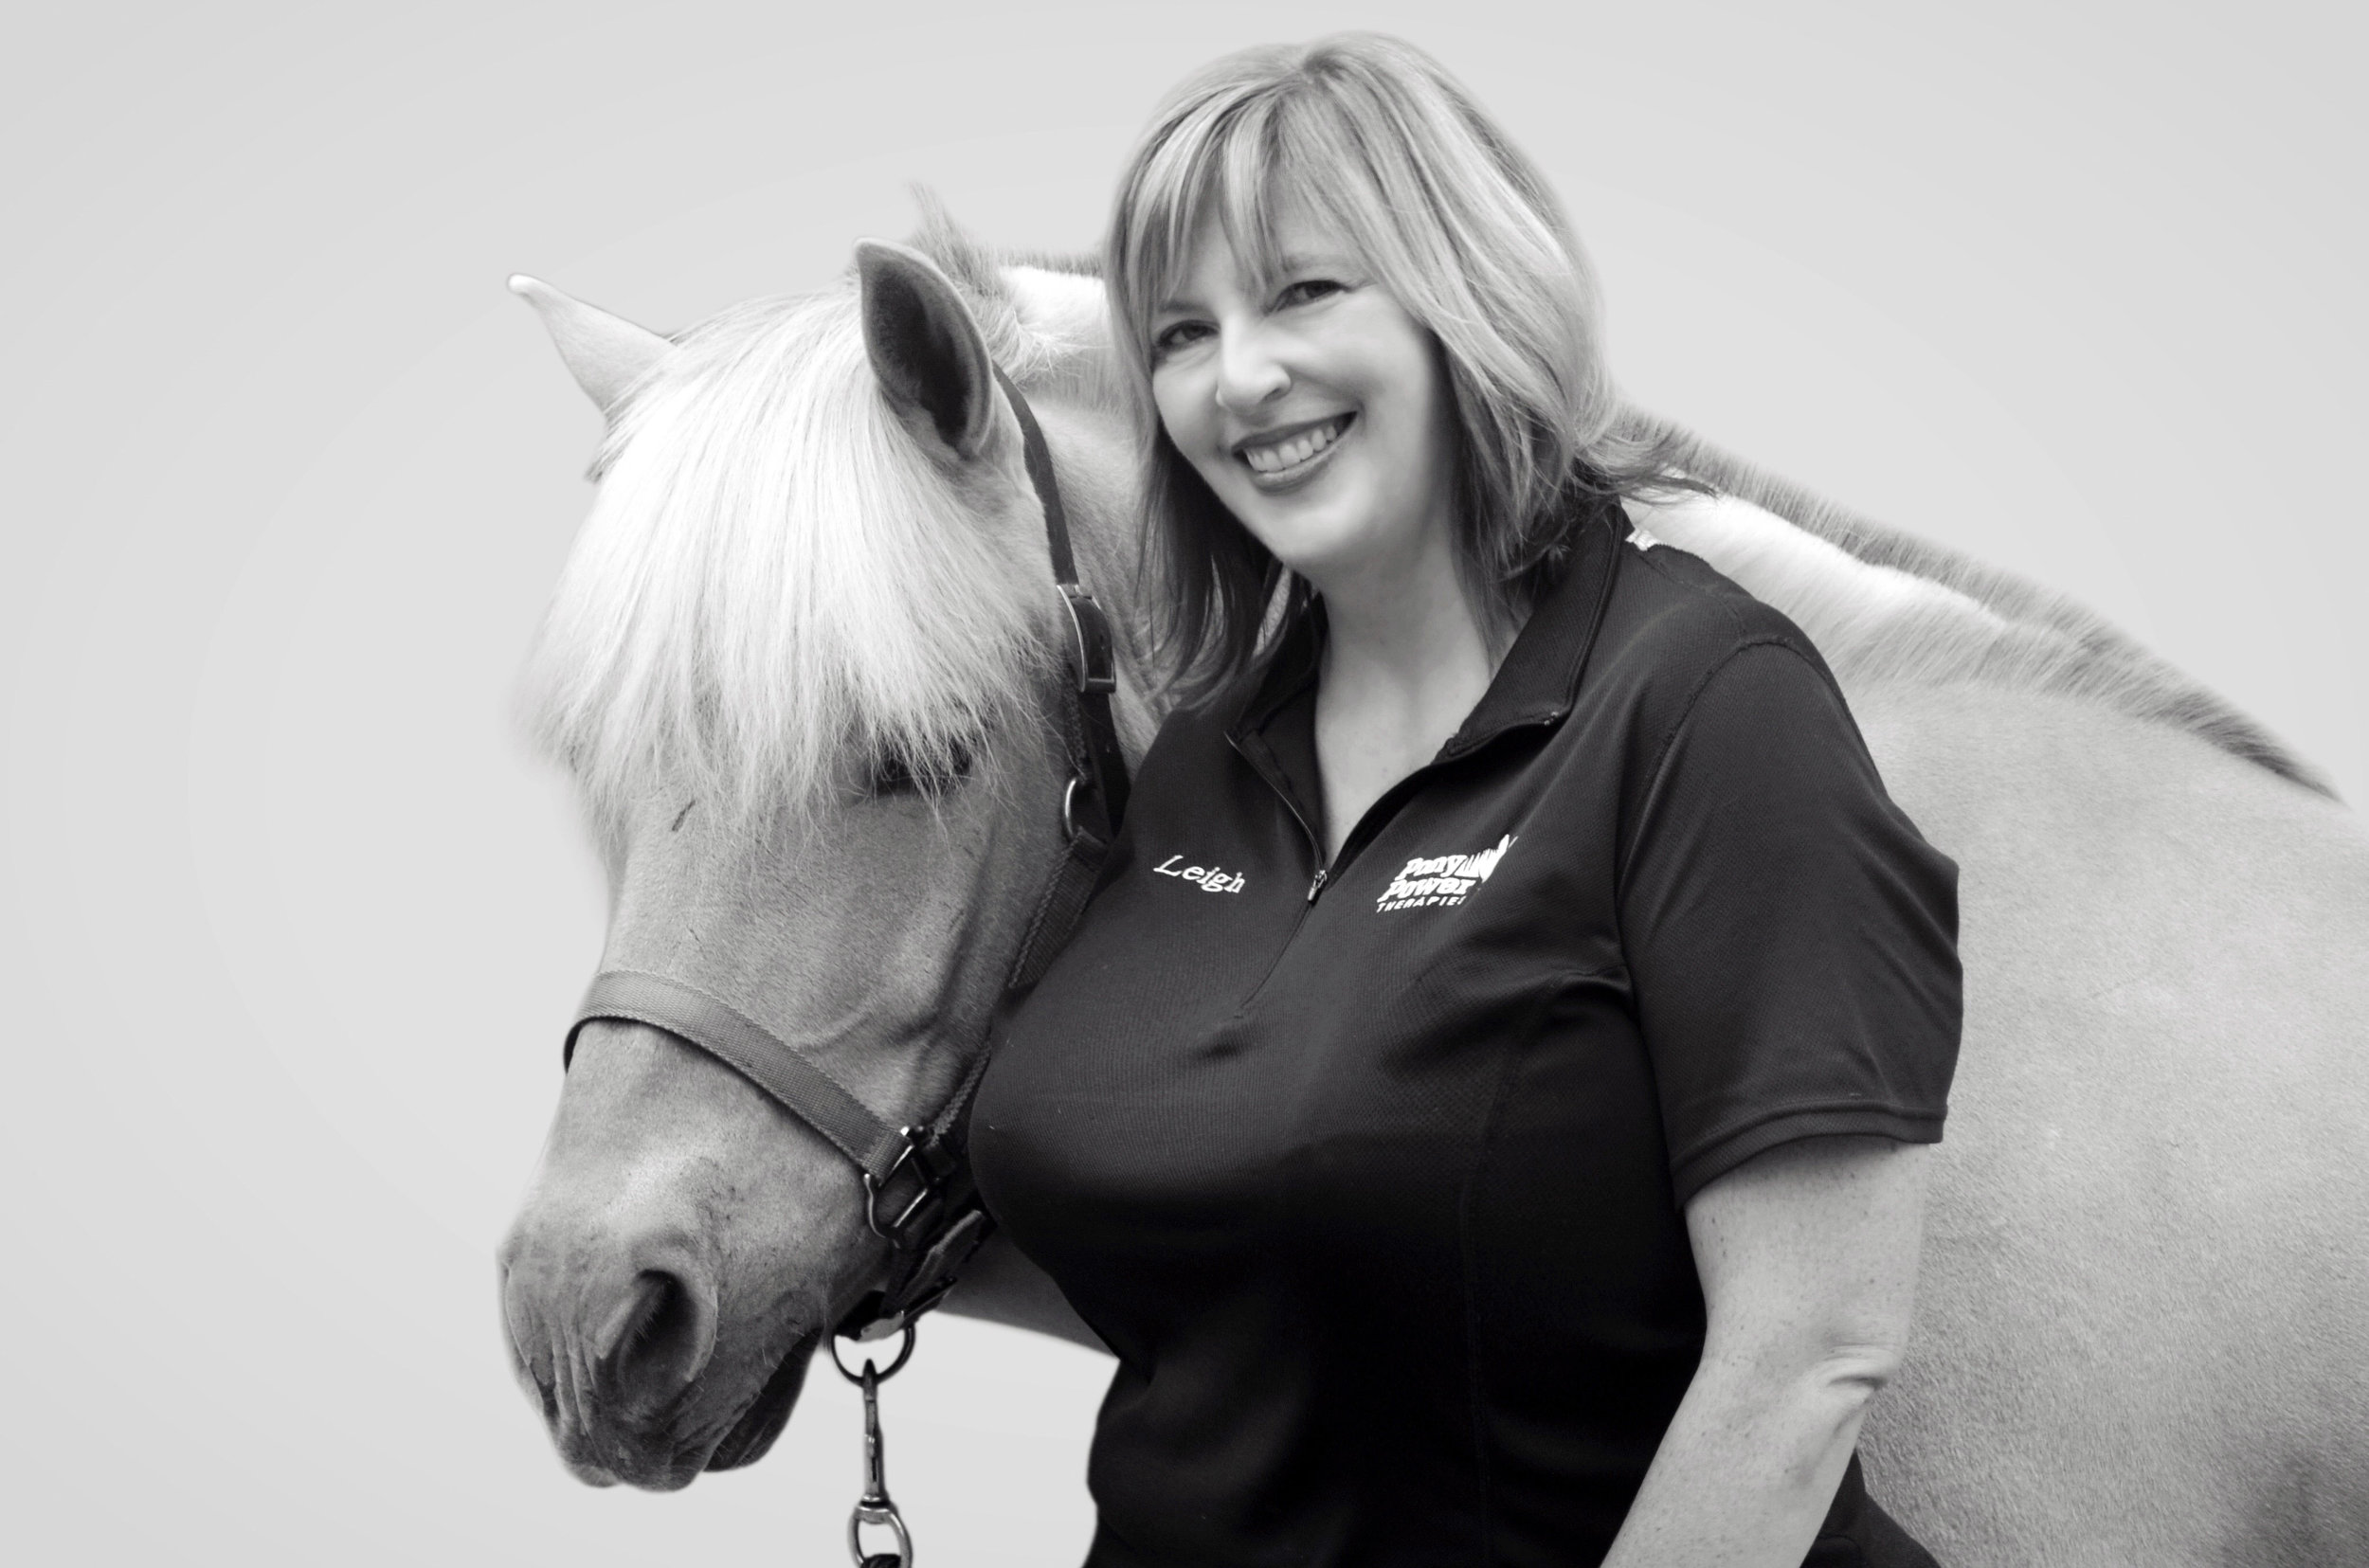 Leigh began volunteering with Pony Power in 2009. Seeing students make progress and grow stronger as a result of therapeutic horseback riding inspired her to resume her own riding education and pursue certification as a PATH International instructor in 2011. Leigh holds a bachelor's degree in journalism from Louisiana State University. She brings nearly 20 years of publications and communications experience to her role as program development director.